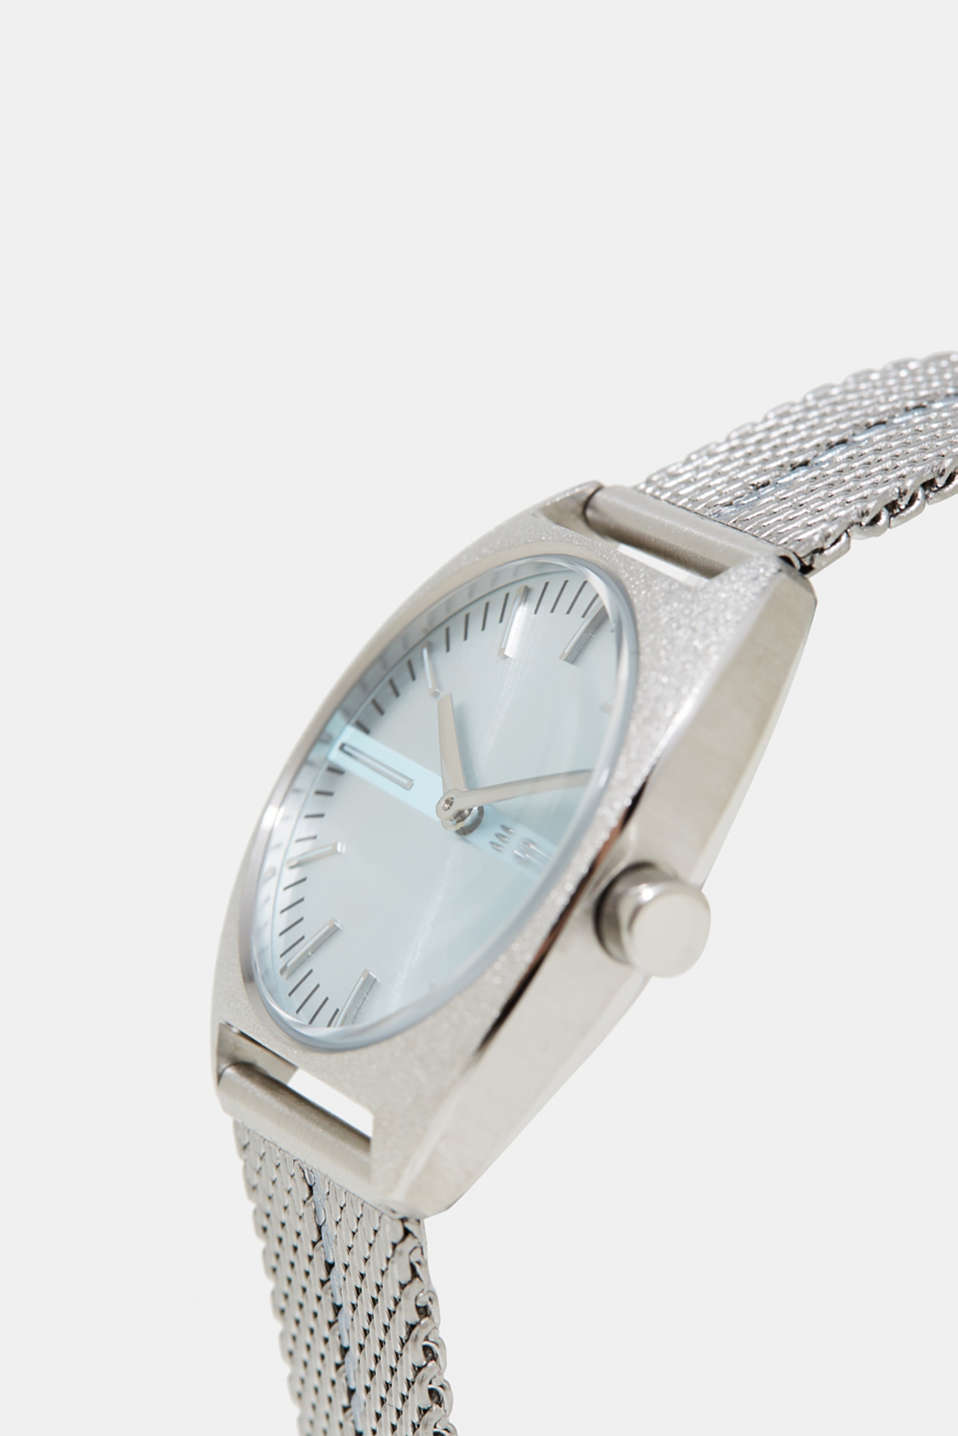 Watch with a stainless Milanese strap